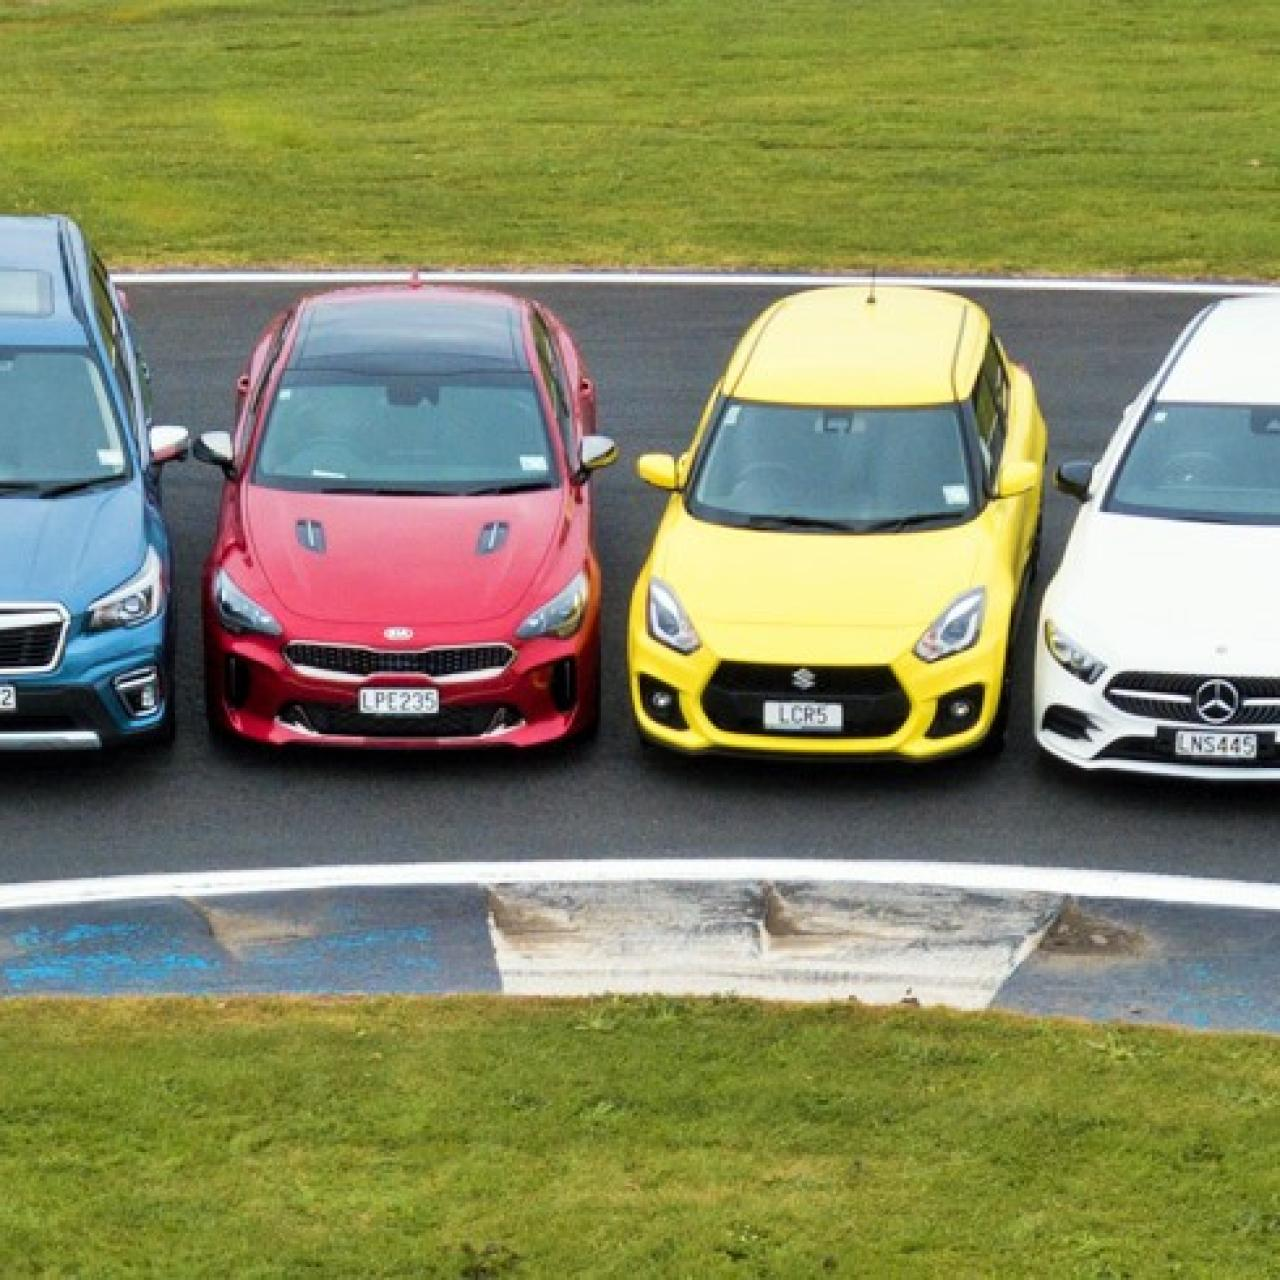 AA and Driven reveal top 10 contenders for New Zealand Car of the Year